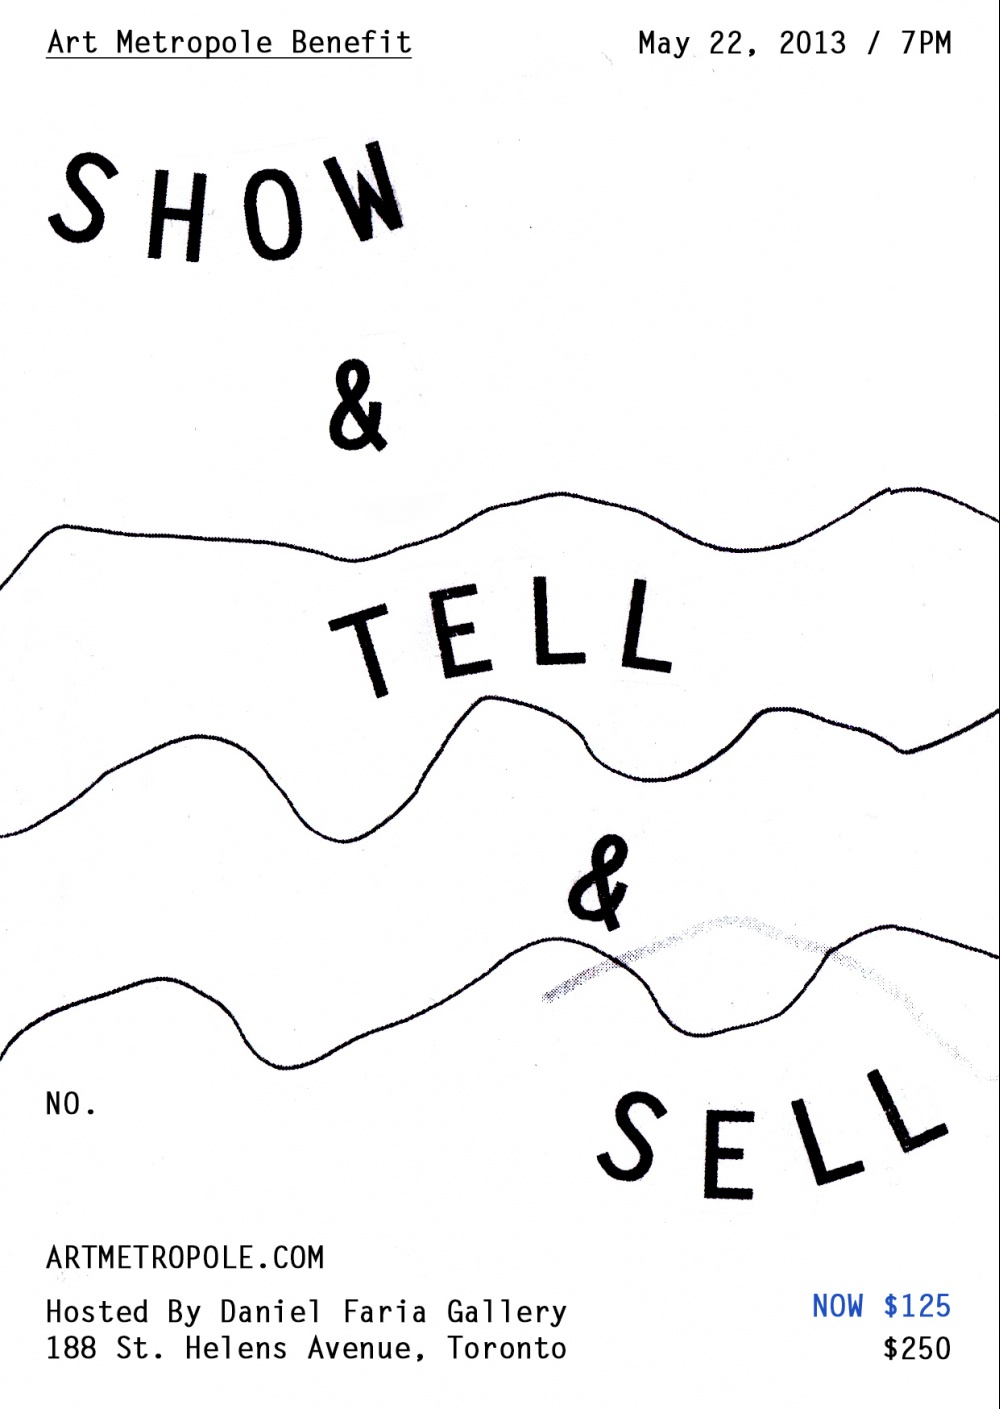 Show & Tell & Sell Benefit Ticket (SPECIAL LIMITED OFFER FOR MEM